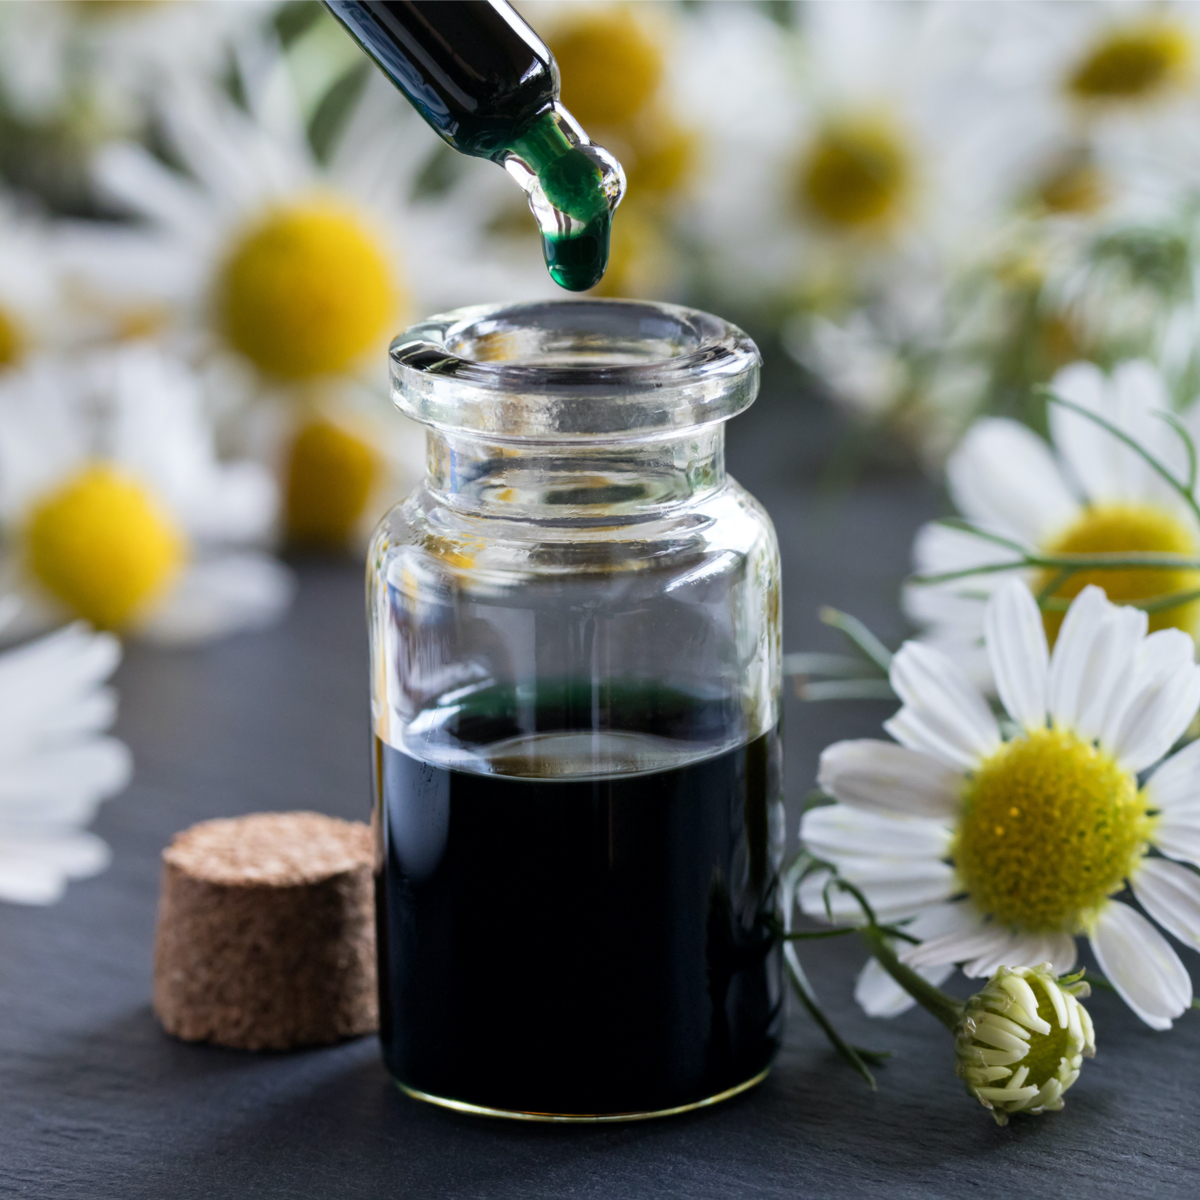 Our relaxing products include chamomile to help you sleep